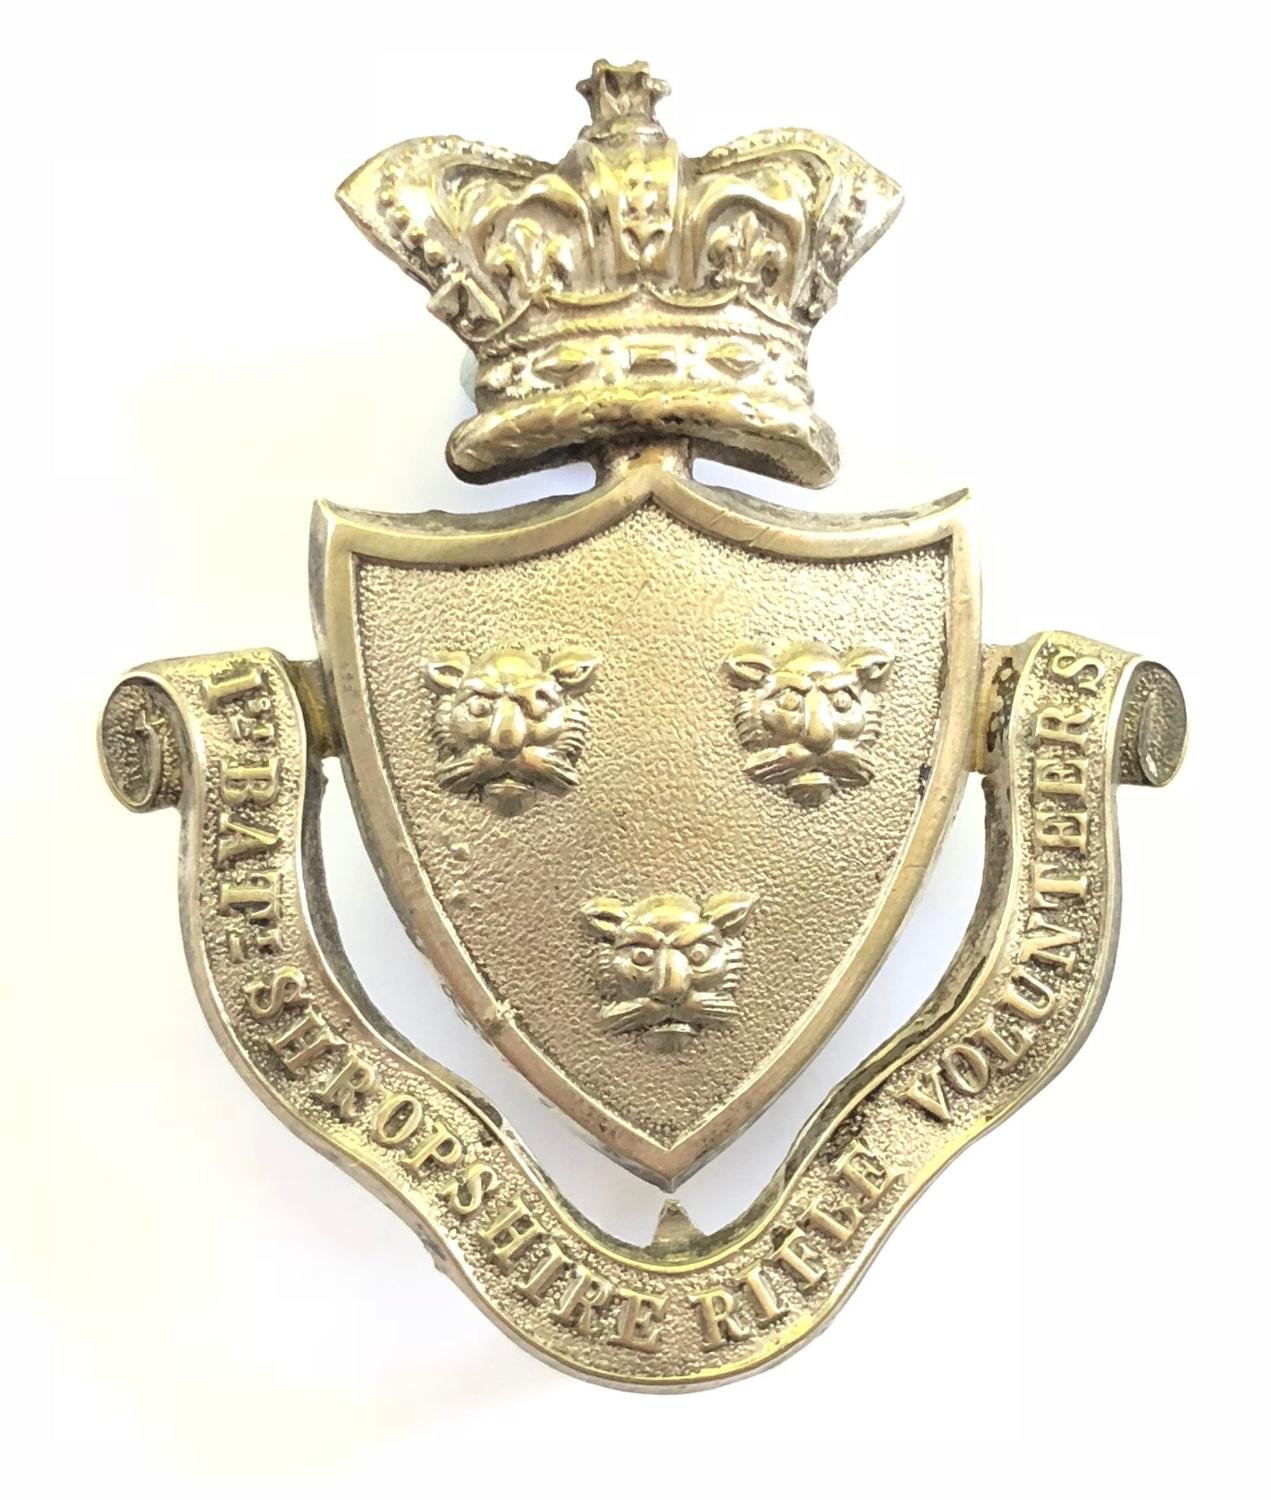 1st Bn. Shropshire Rifle Vols. Victorian Officer's pouch belt plate.